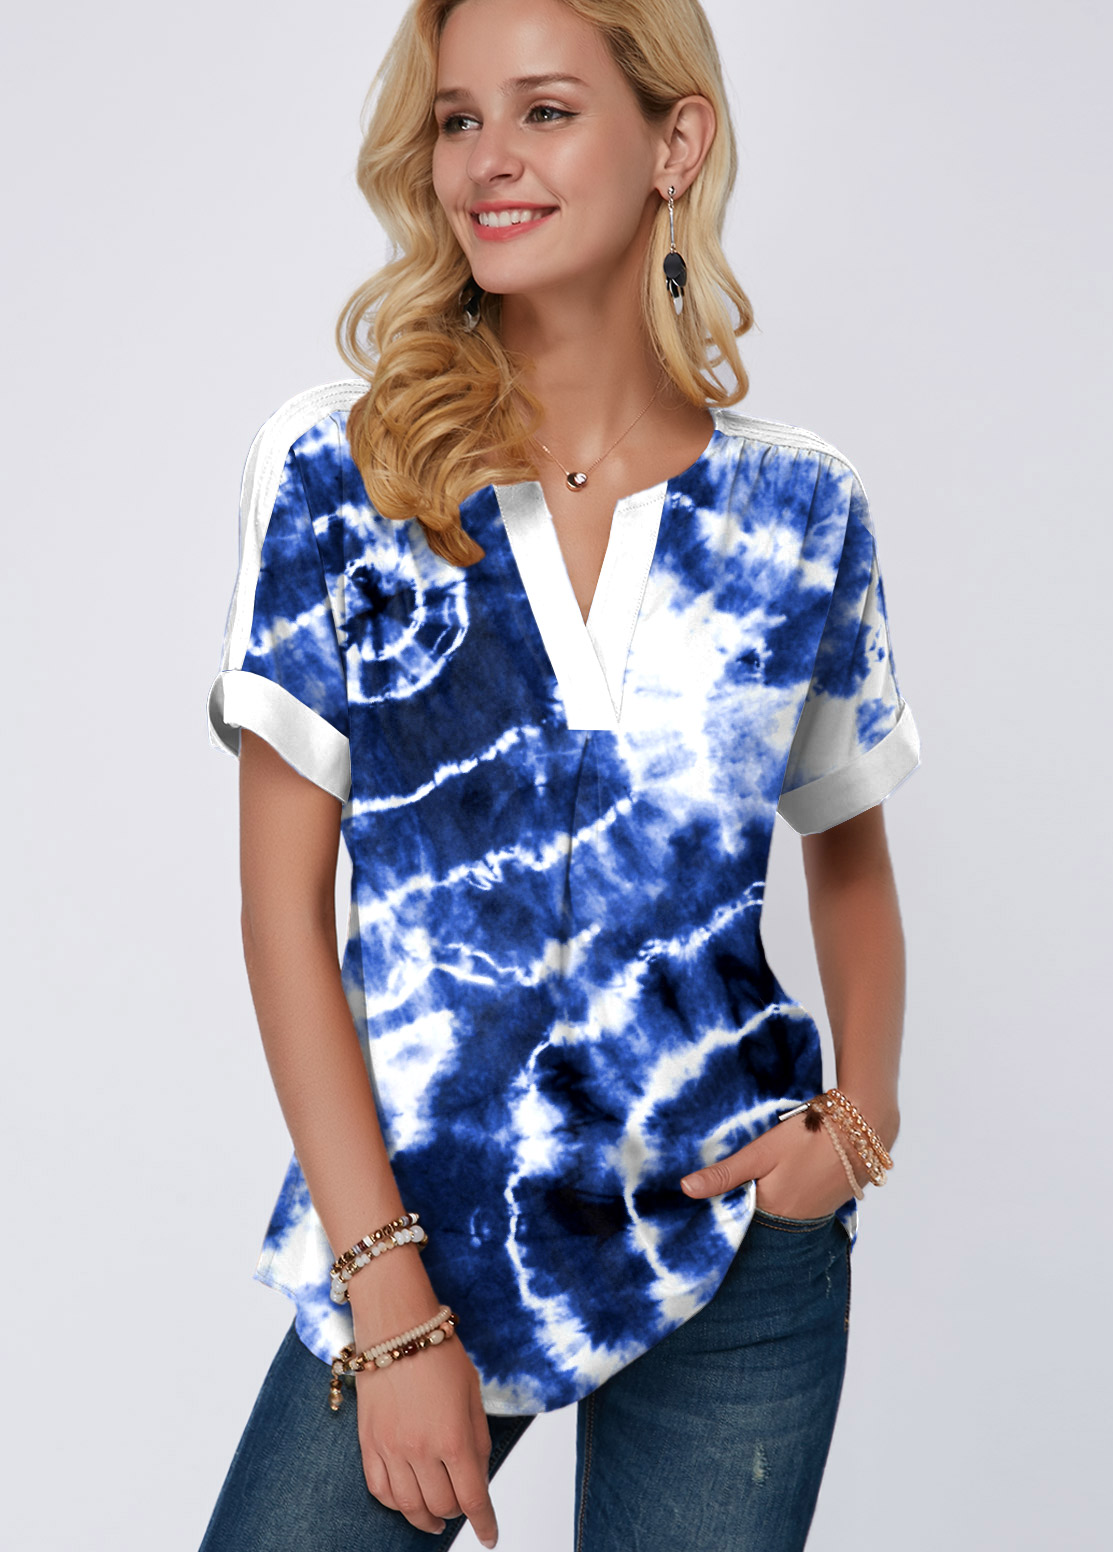 ROTITA Split Neck Tie Dye Print Short Sleeve Blouse